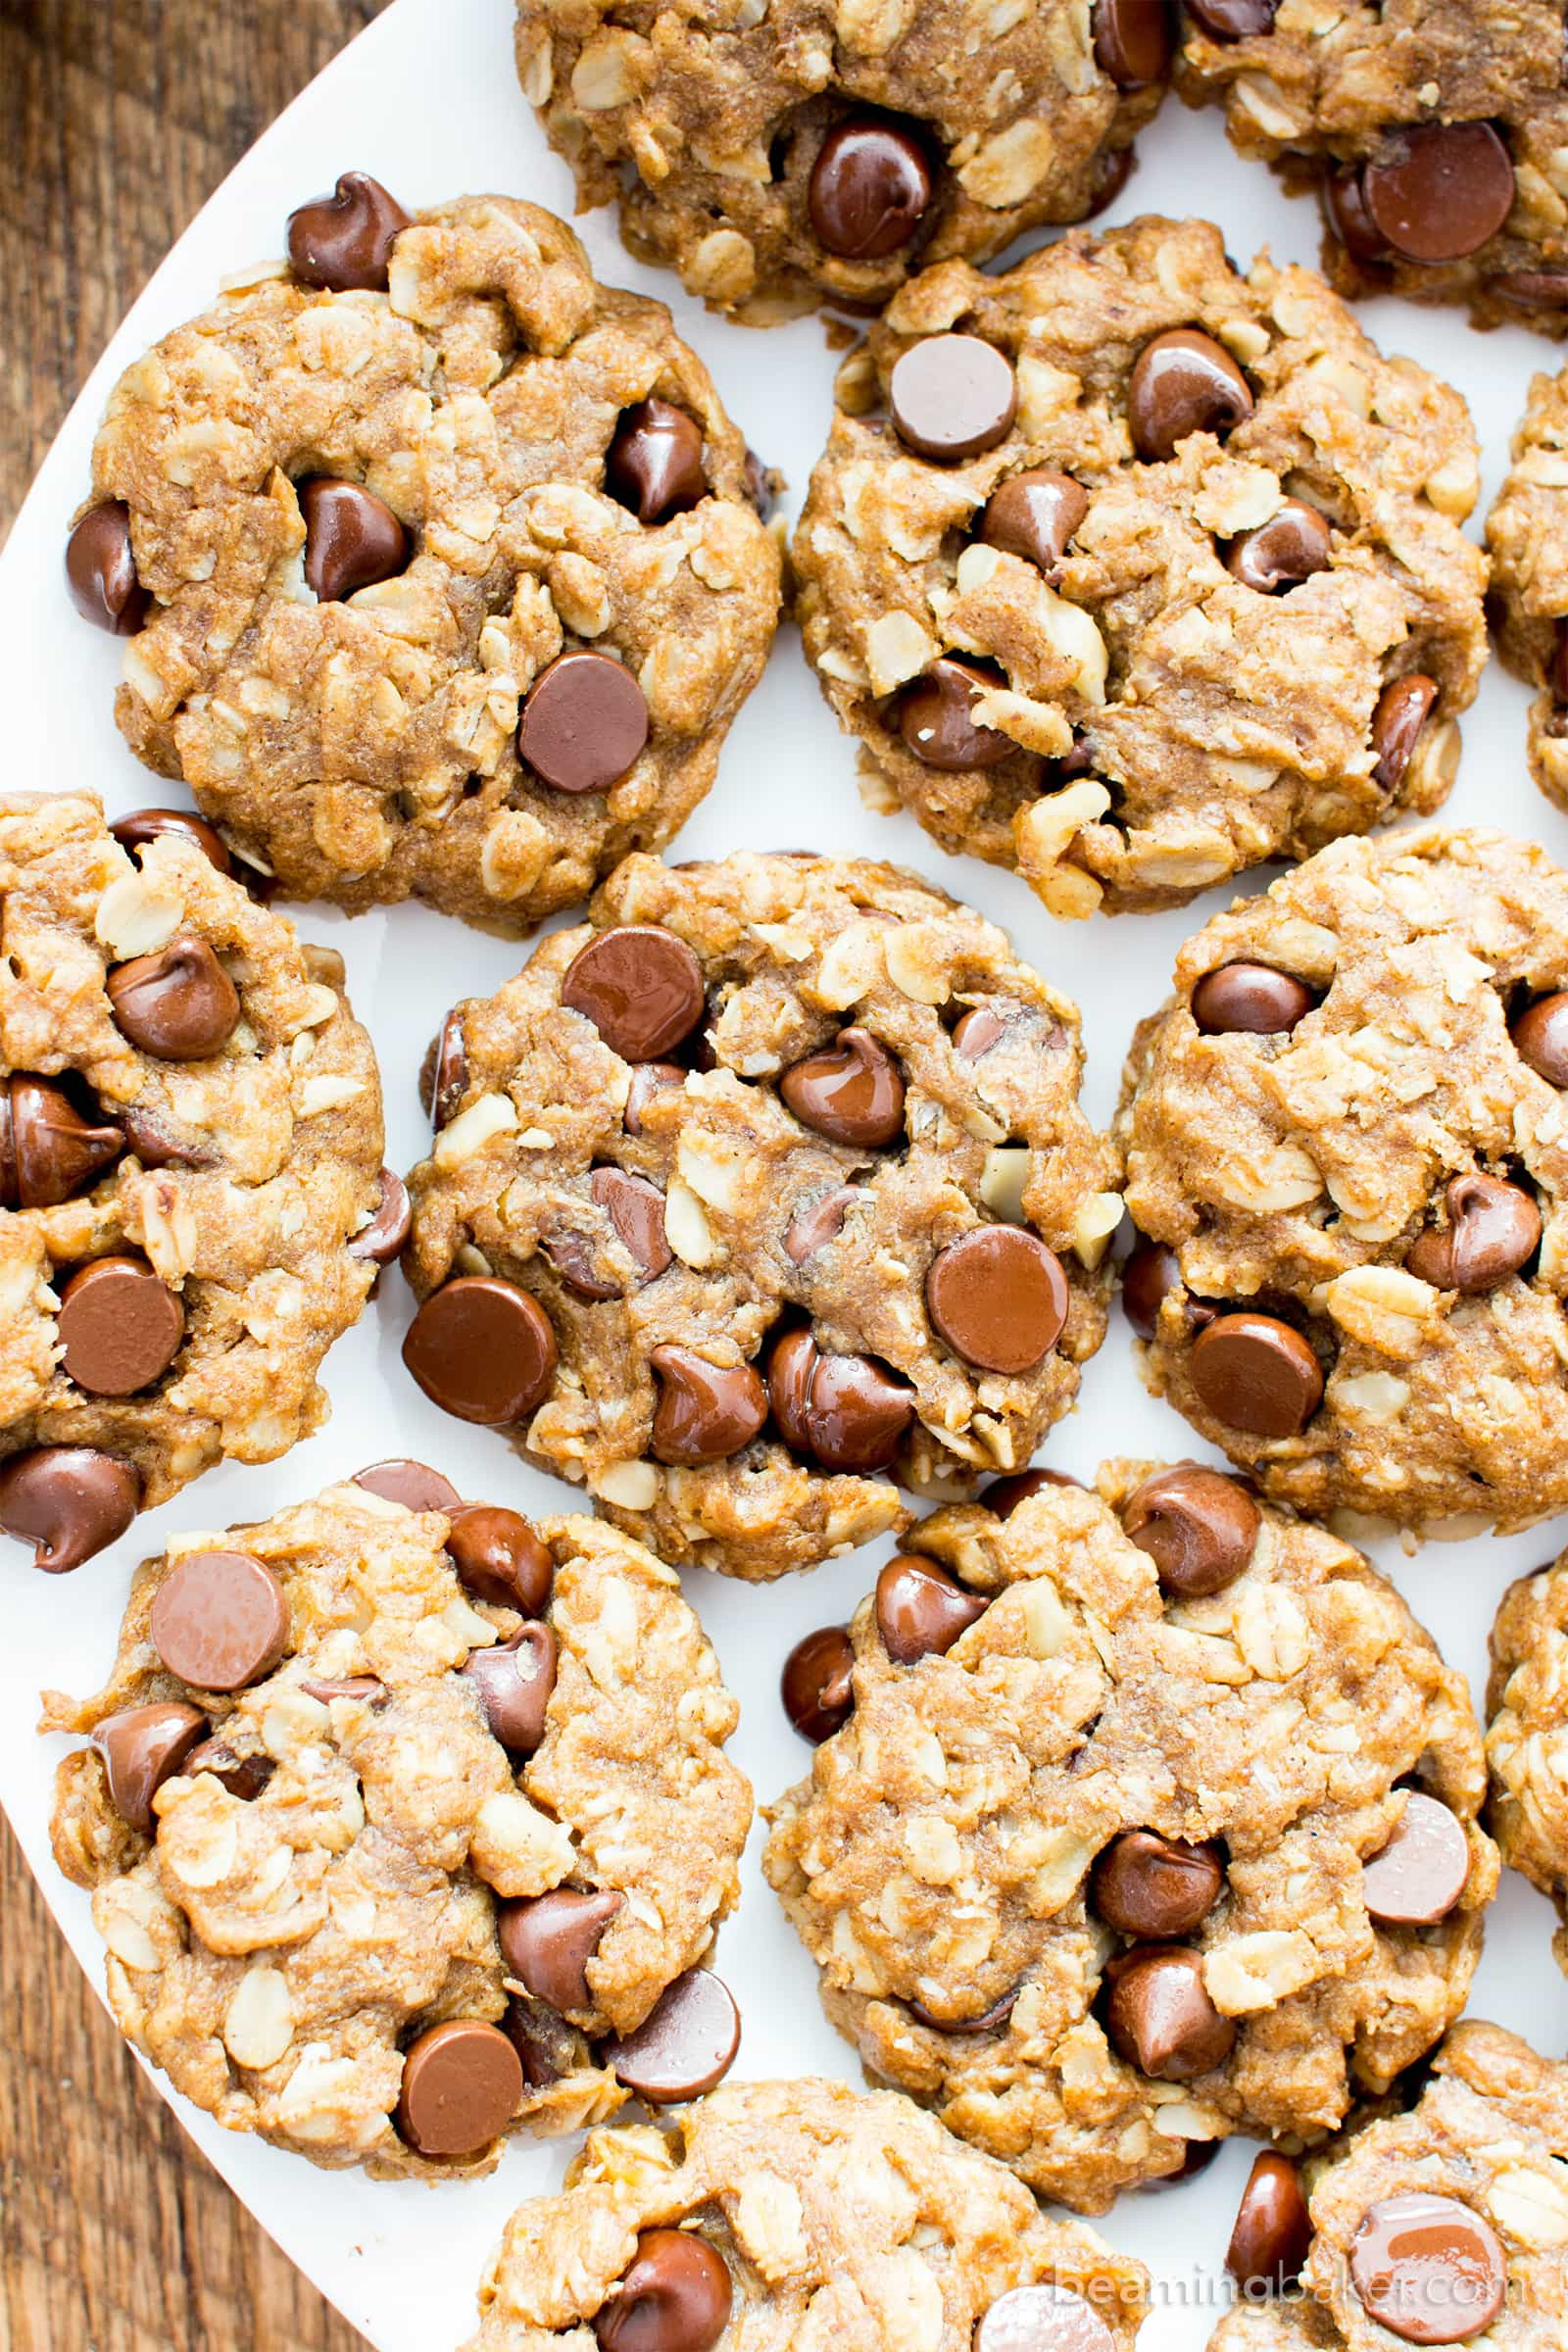 Oatmeal Peanut Butter Cookies Healthy  Easy Gluten Free Peanut Butter Chocolate Chip Oatmeal